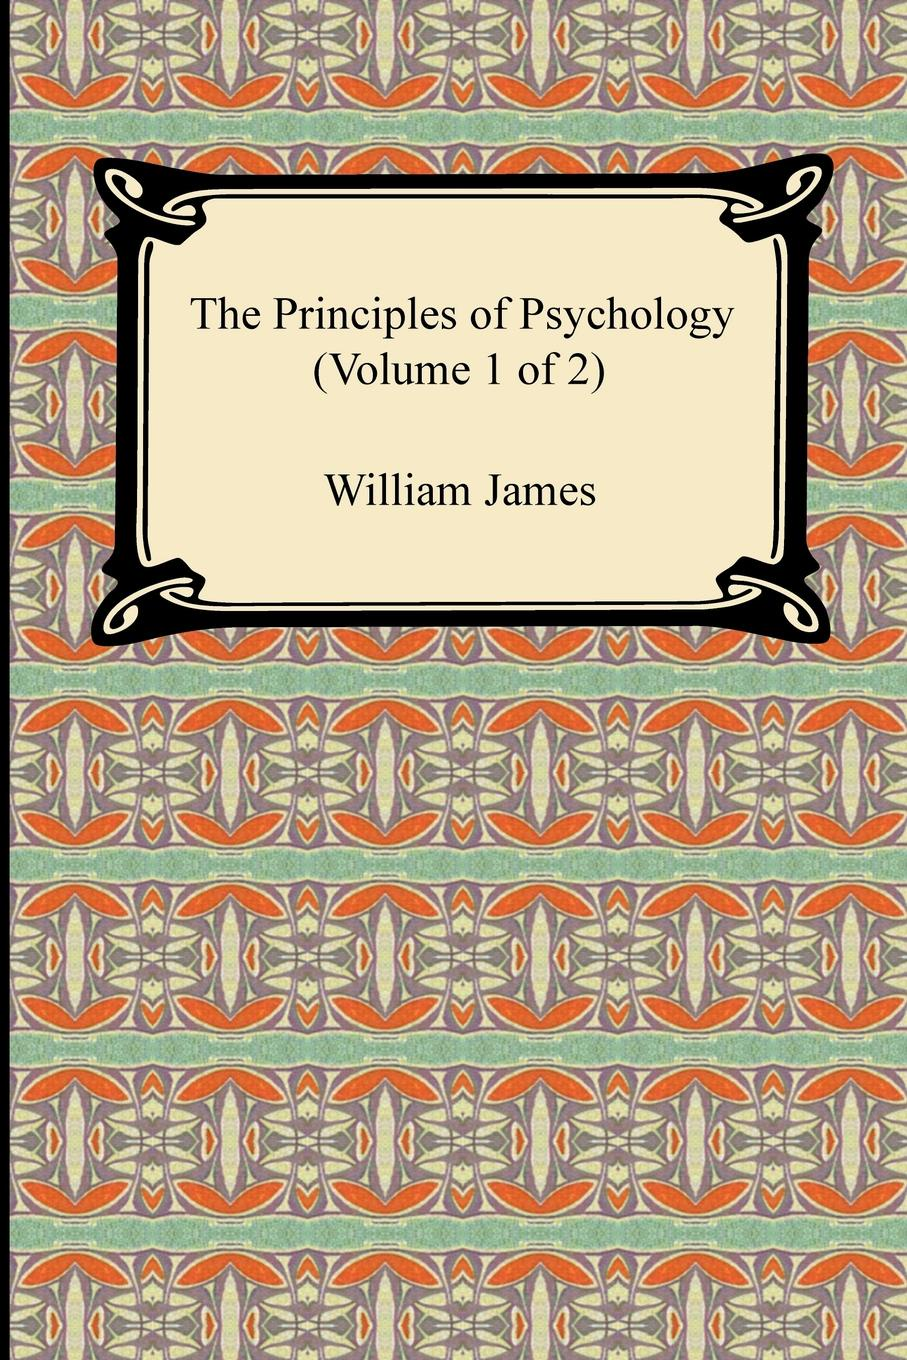 William James The Principles of Psychology (Volume 1 of 2) william james the principles of psychology volume 2 of 2